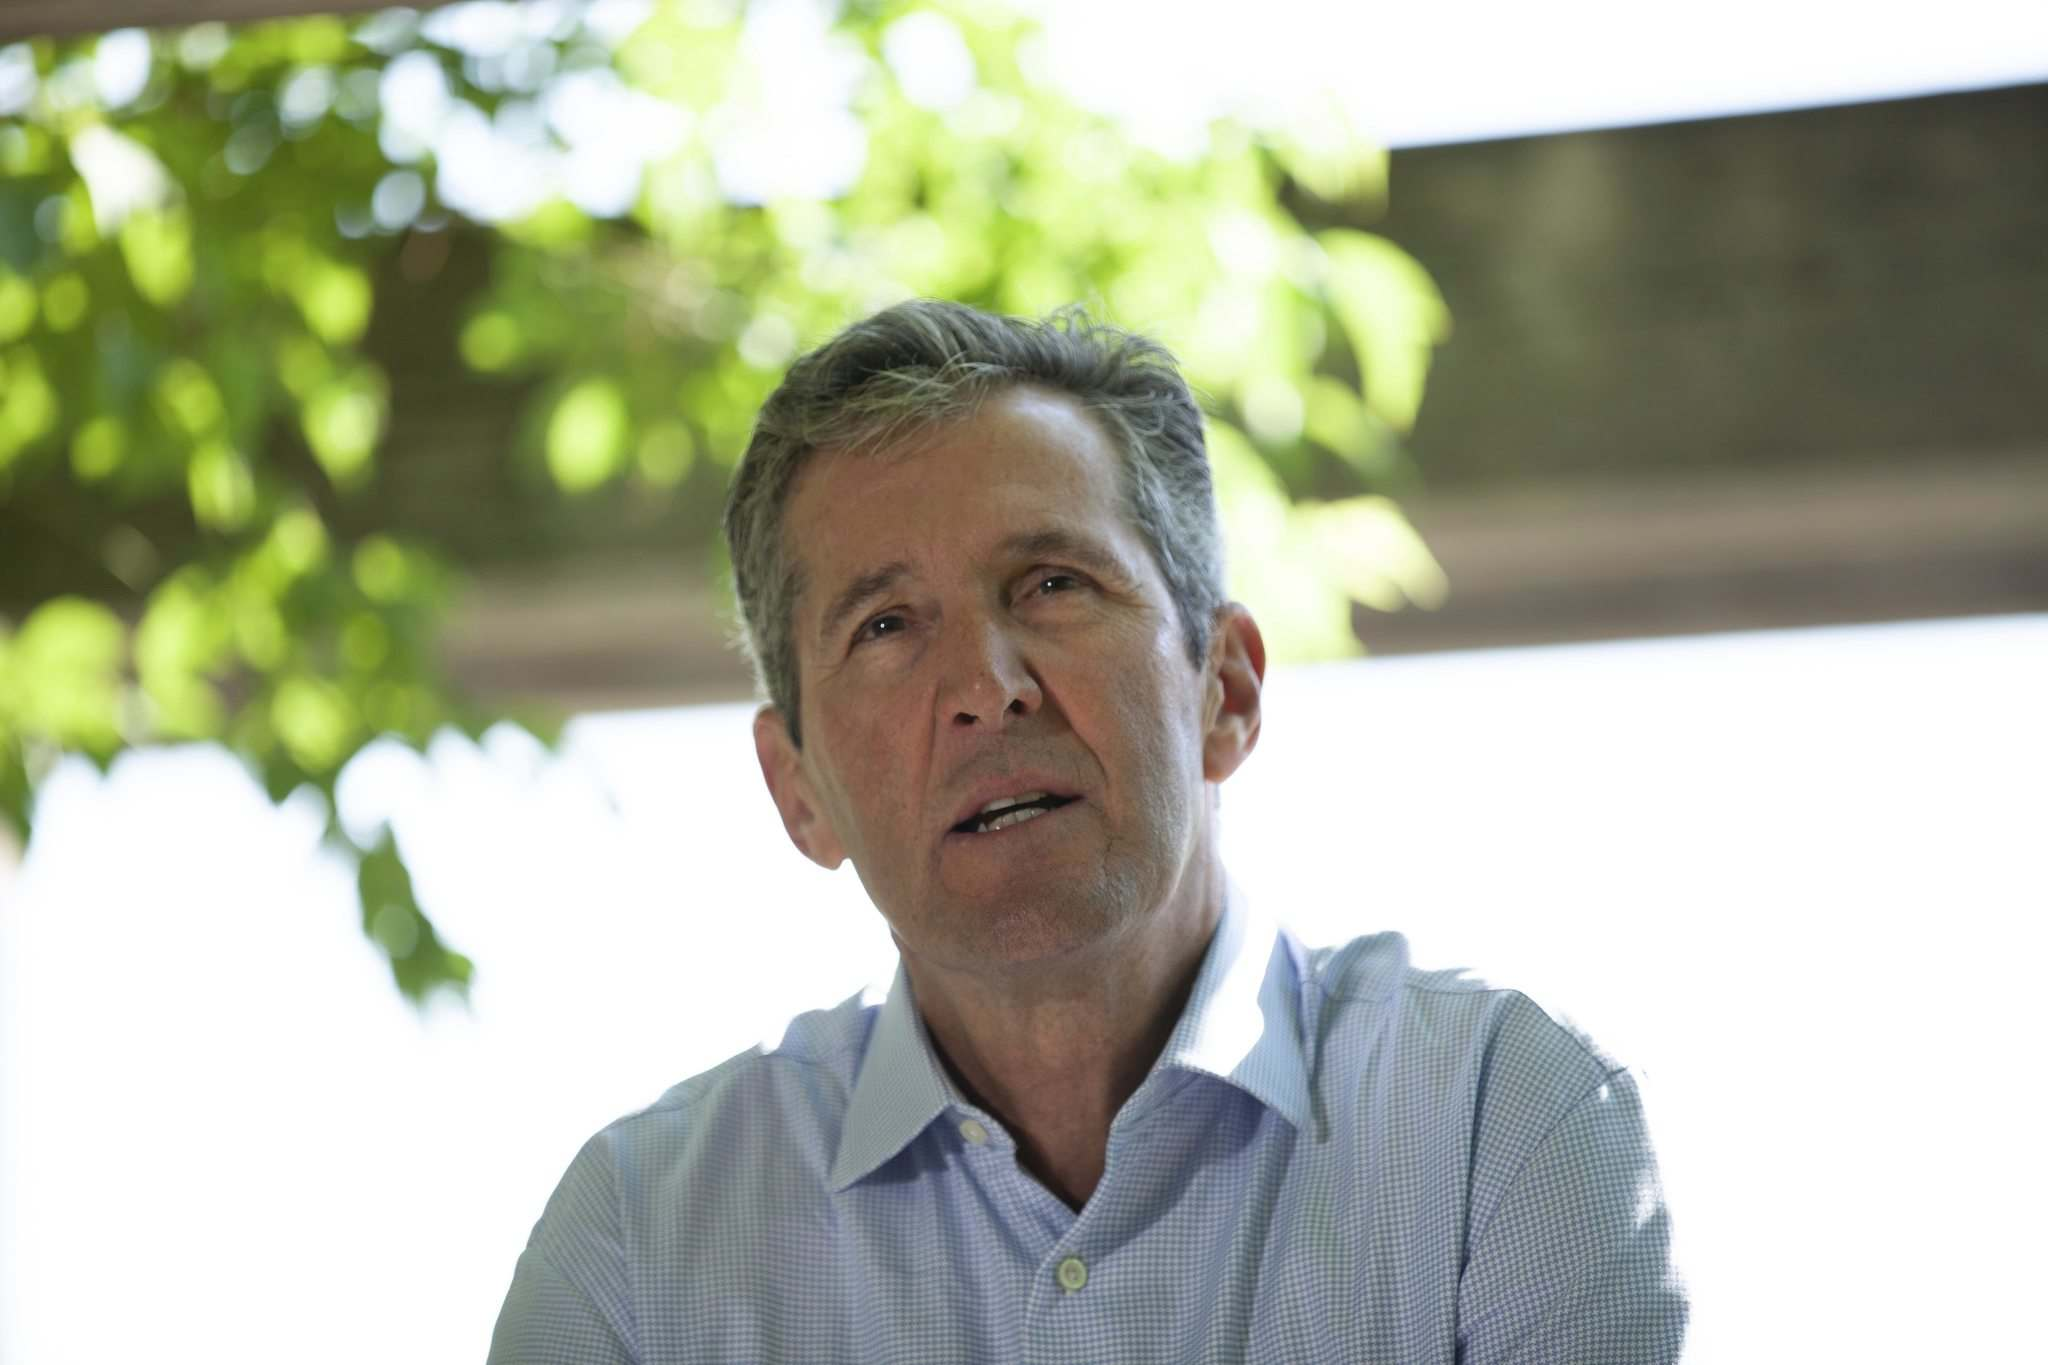 ANDREW RYAN / WINNIPEG FREE PRESS</p><p>Manitoba Premier Brian Pallister </p>